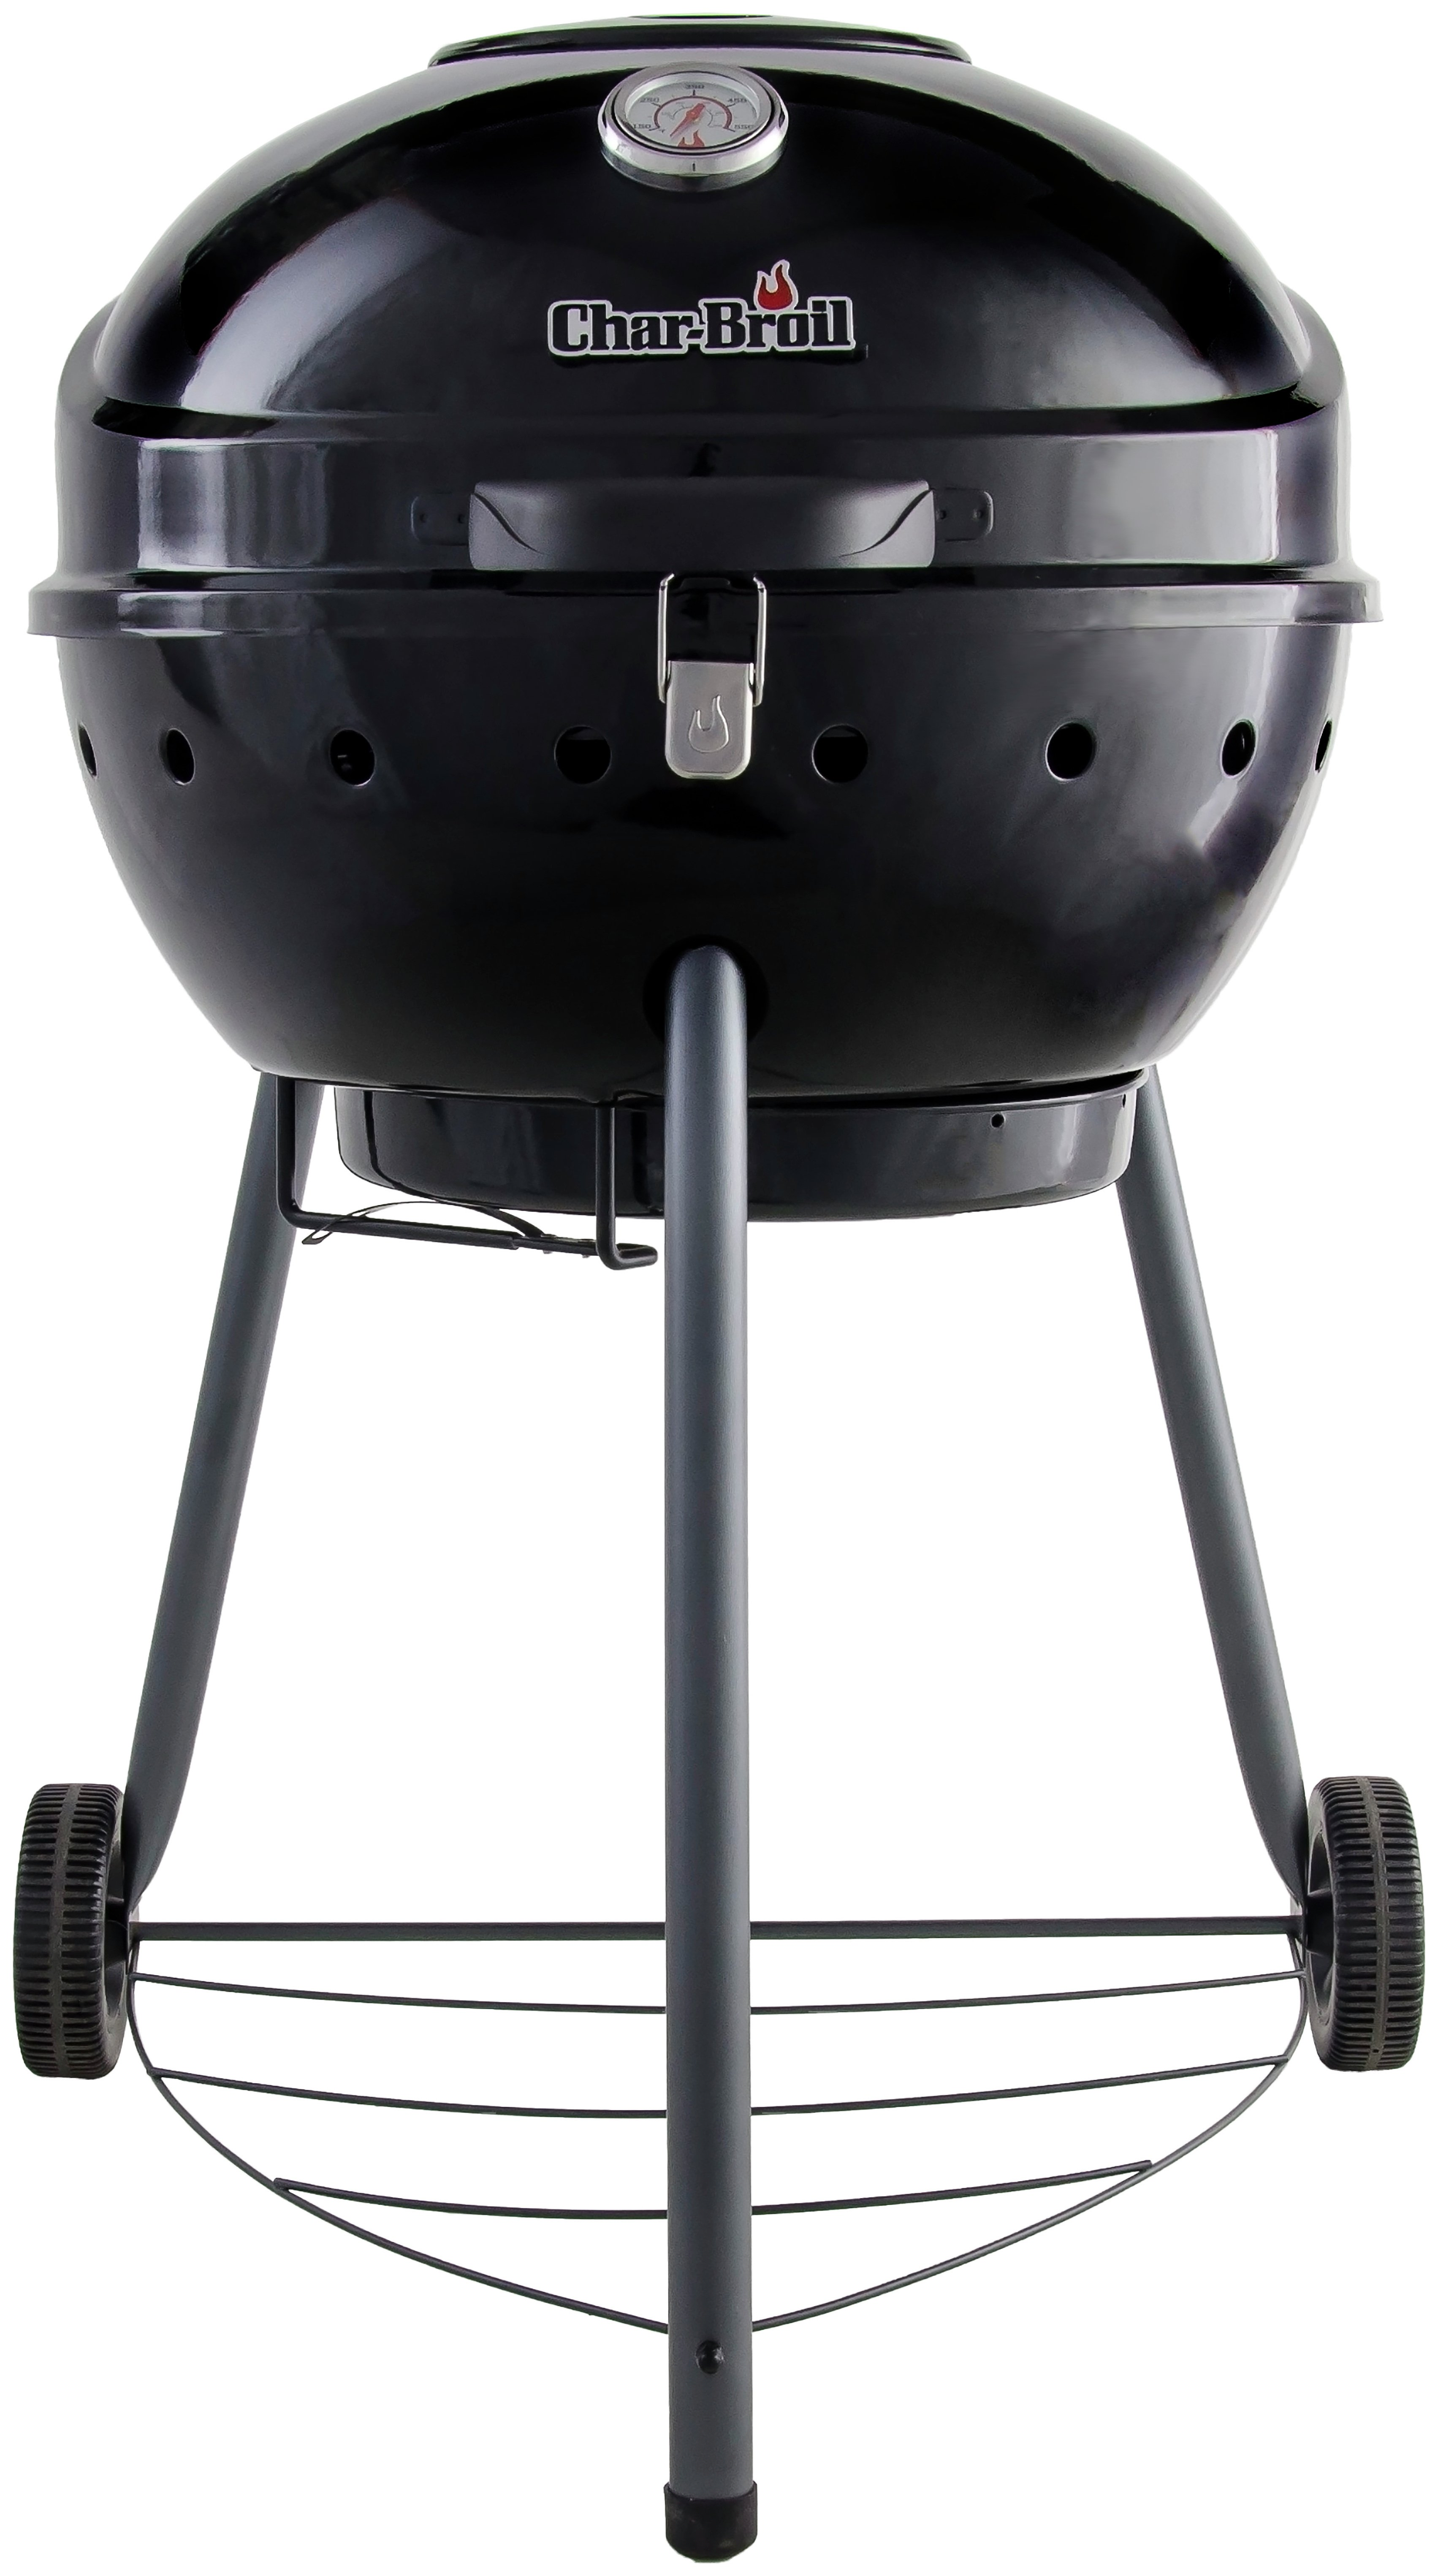 Image of Char-Broil Kettleman Charcoal BBQ.